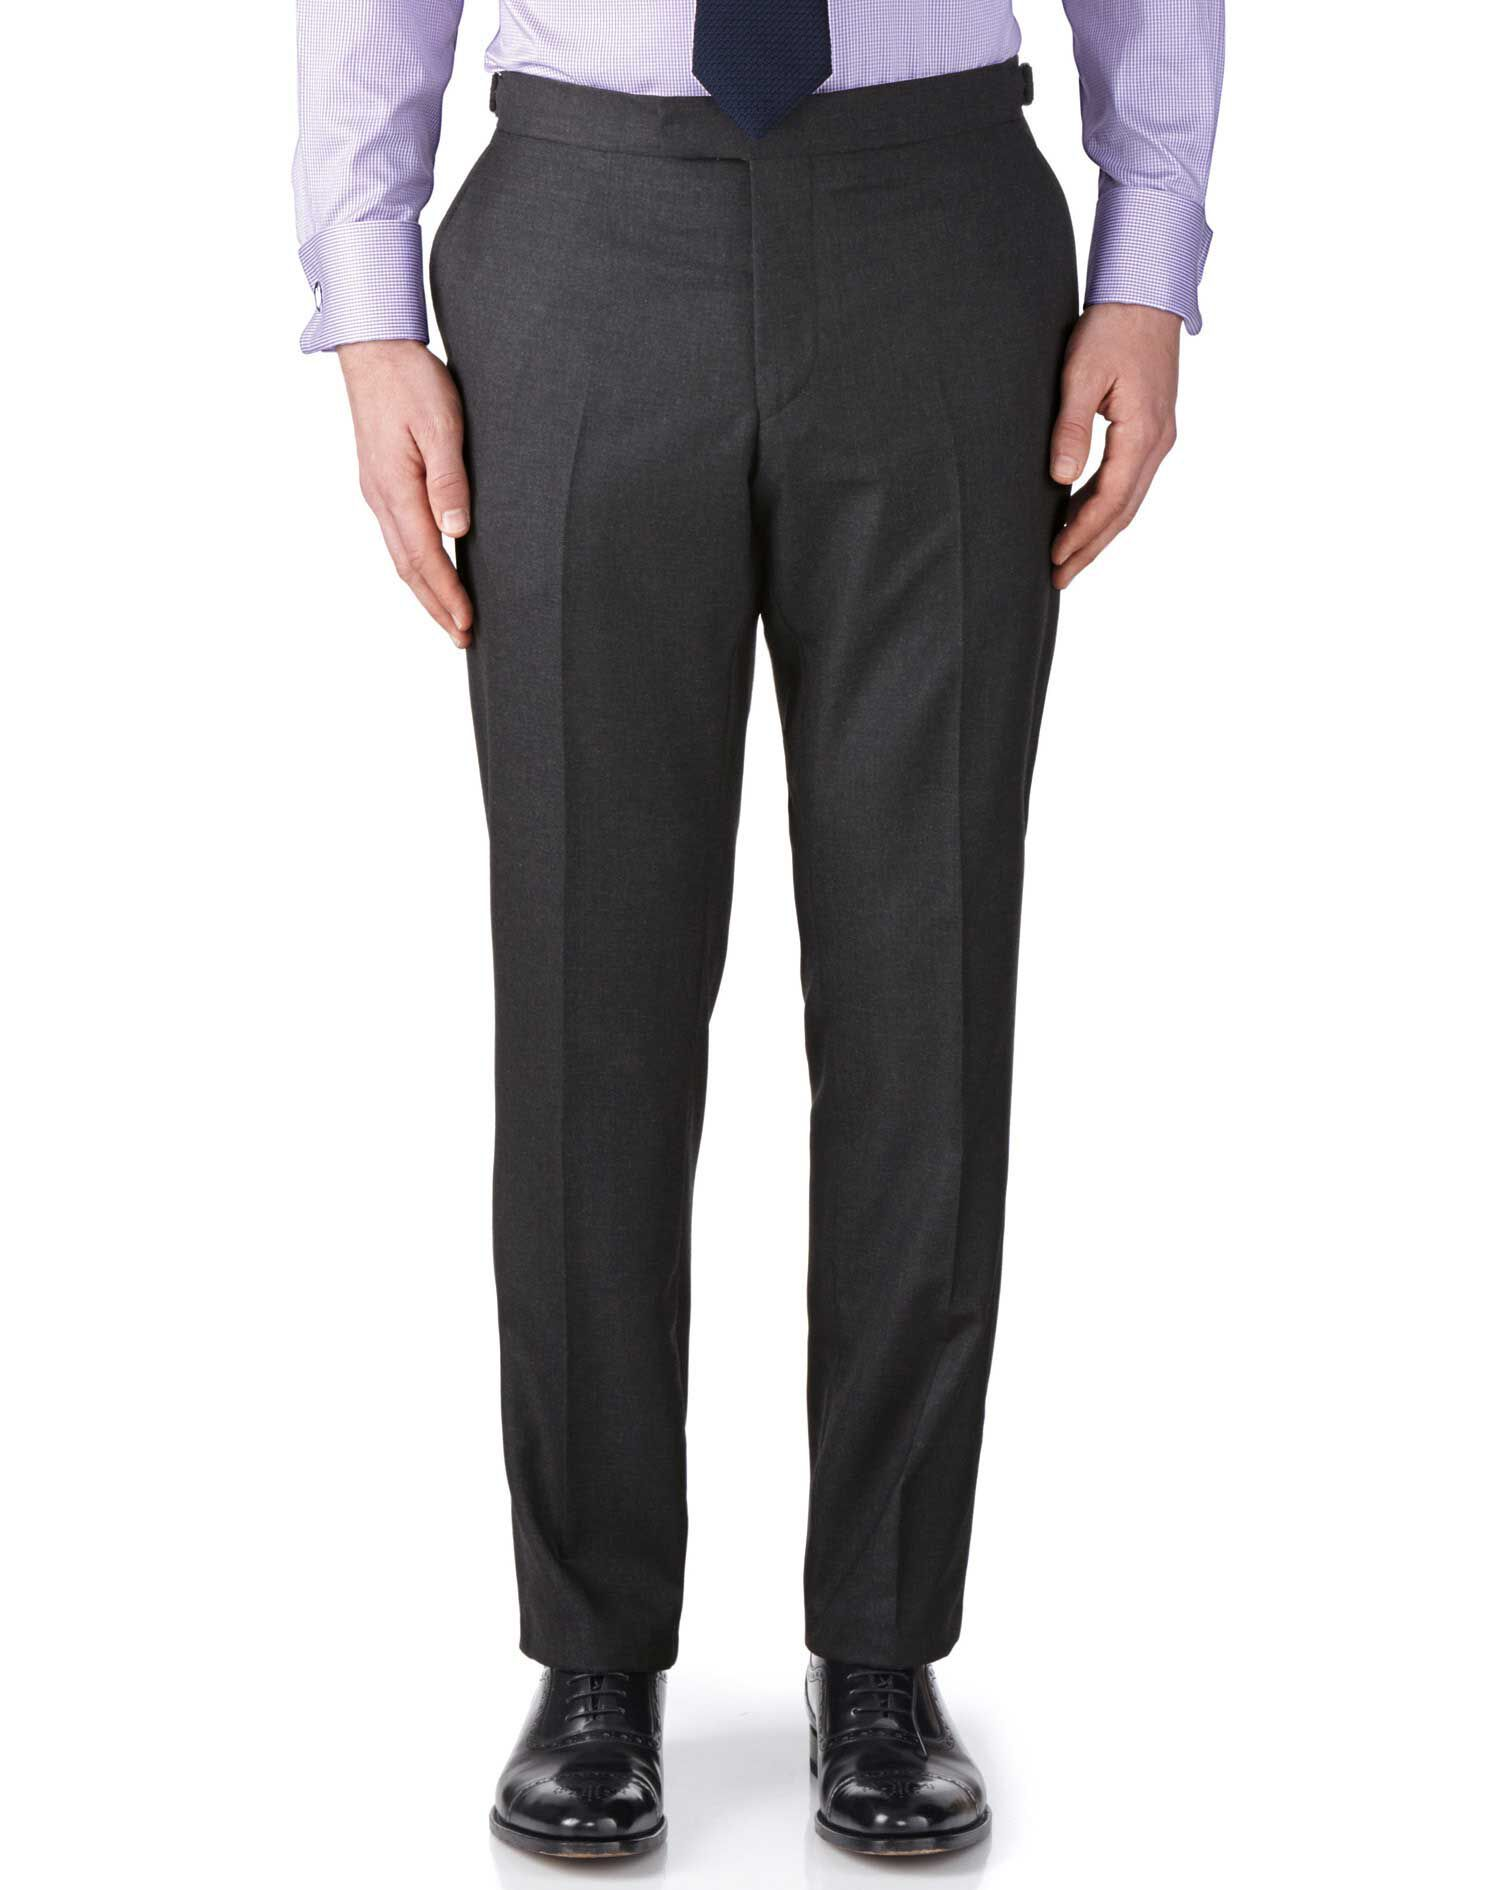 Charcoal Classic Fit British Panama Luxury Suit Trousers Size W32 L38 by Charles Tyrwhitt